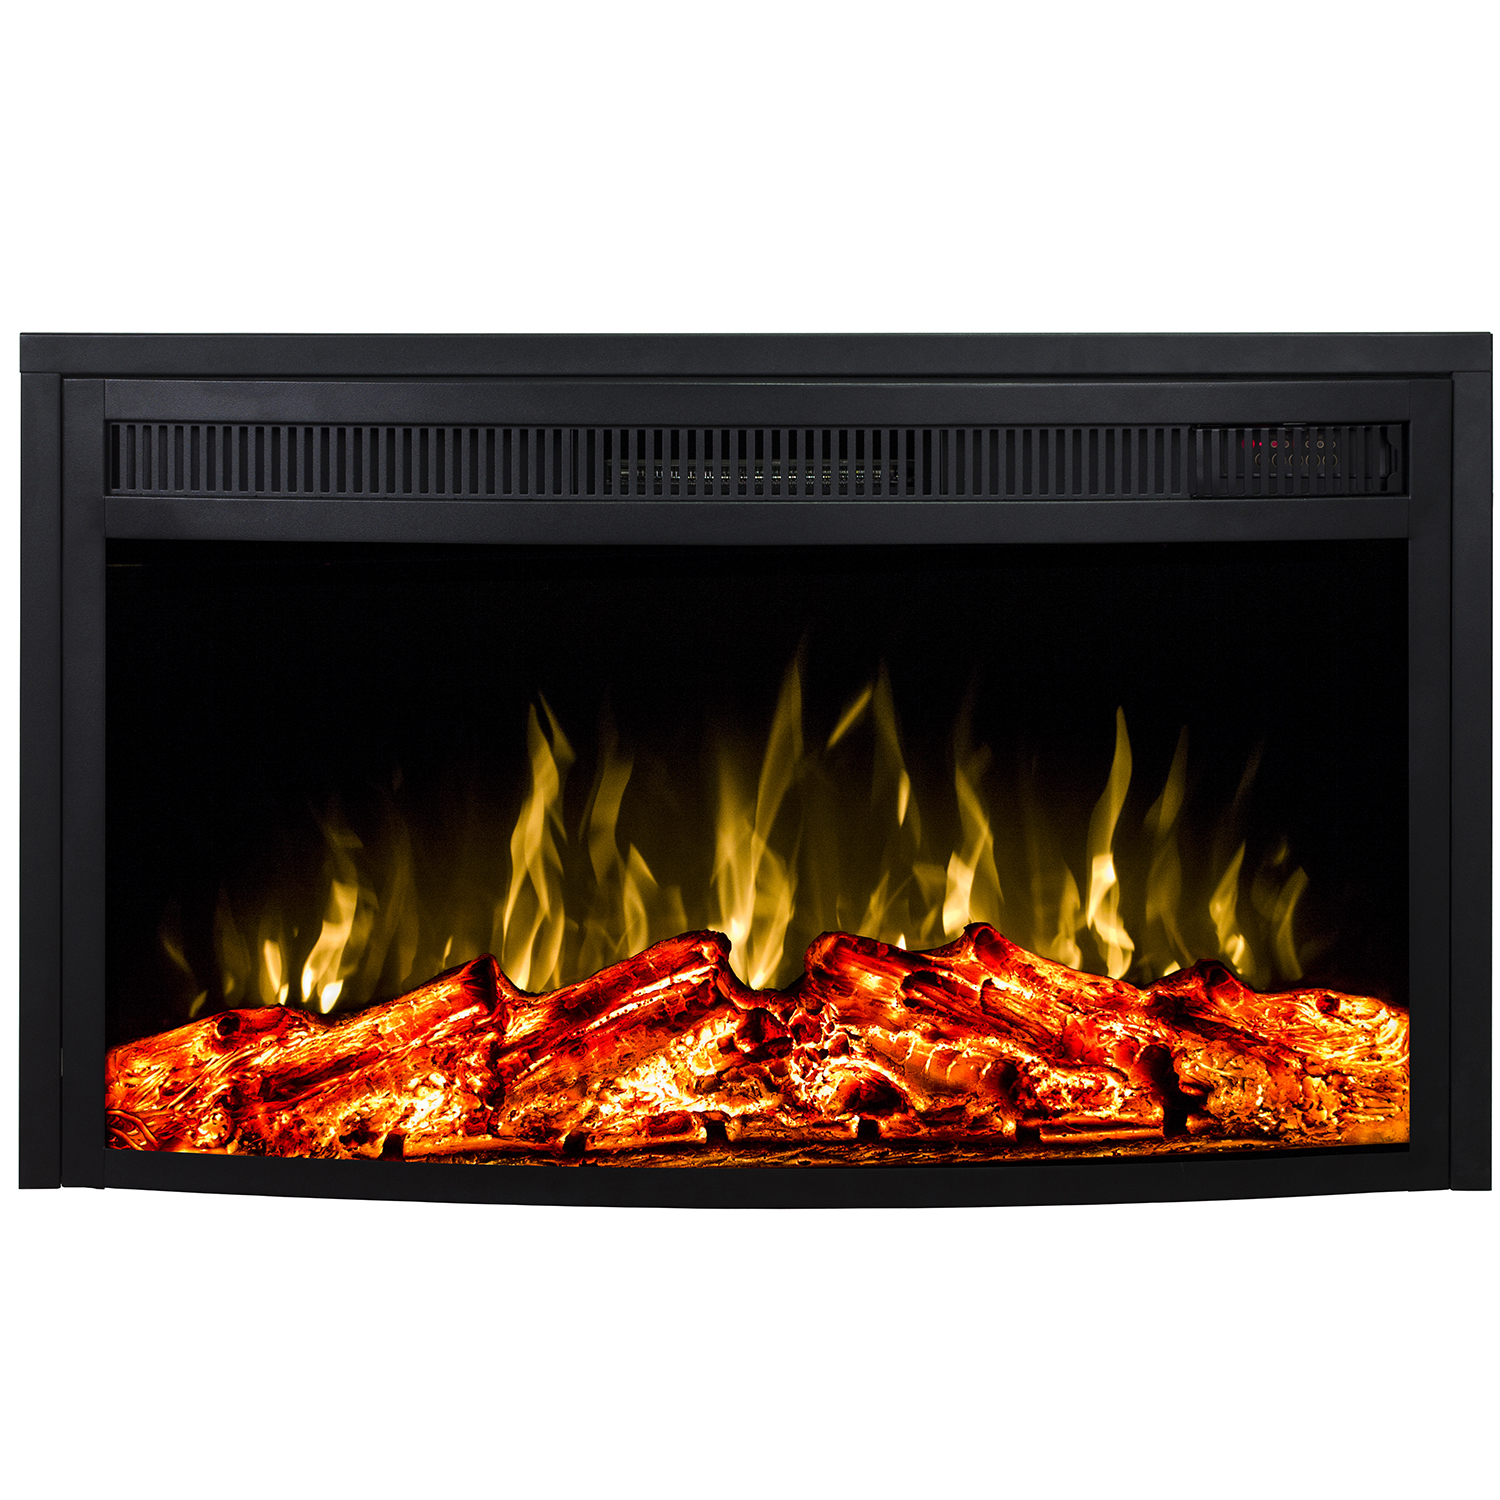 Regal Flame 33 Inch Curved Ventless Heater Electric